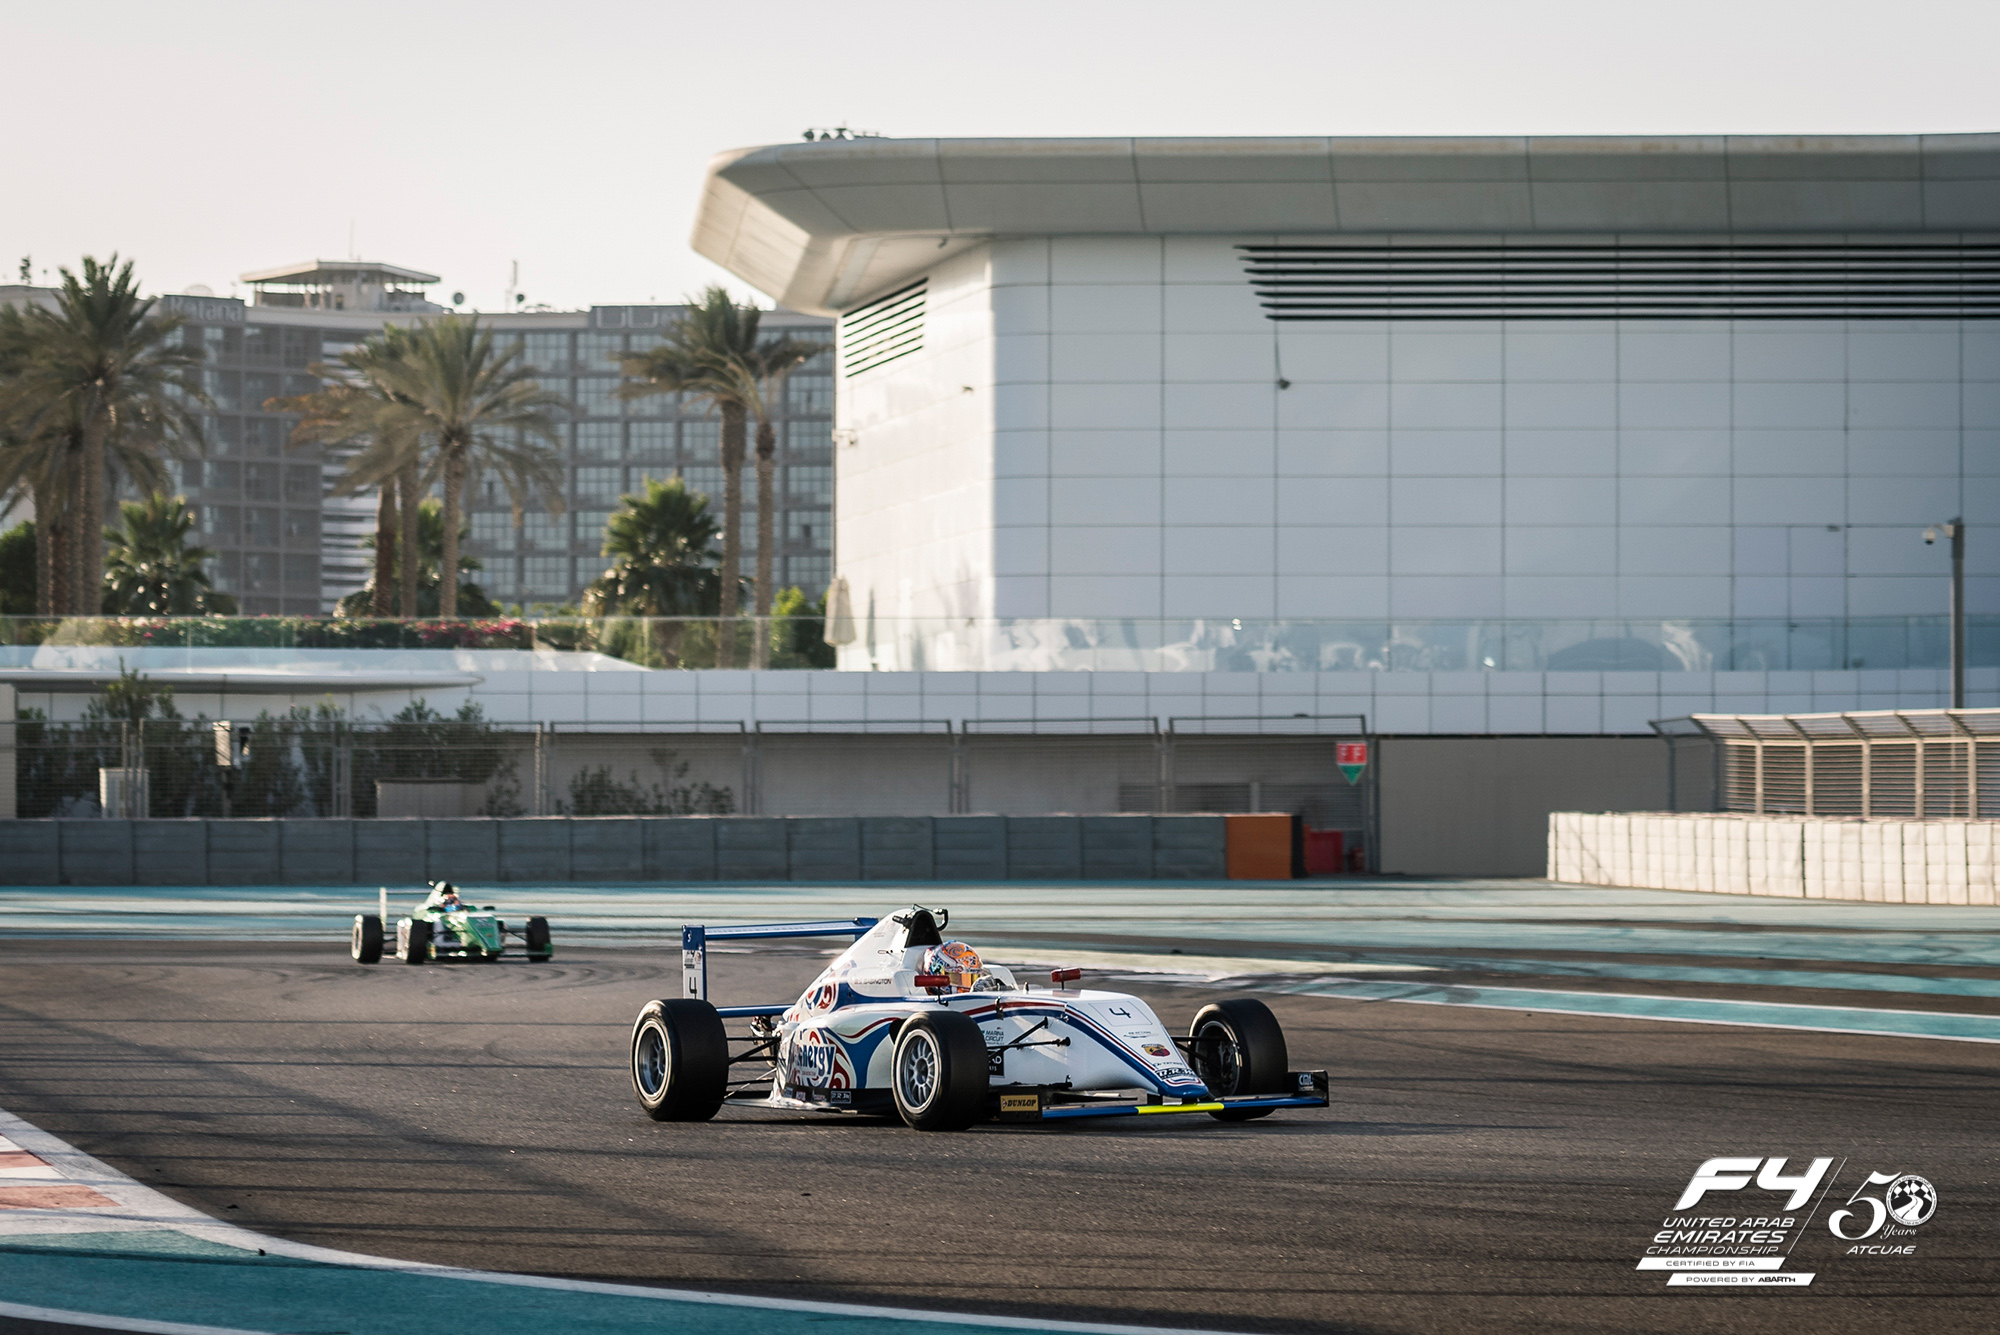 2016 12 18   F4 Second Roud   Abu Dhabi 33 Of 39